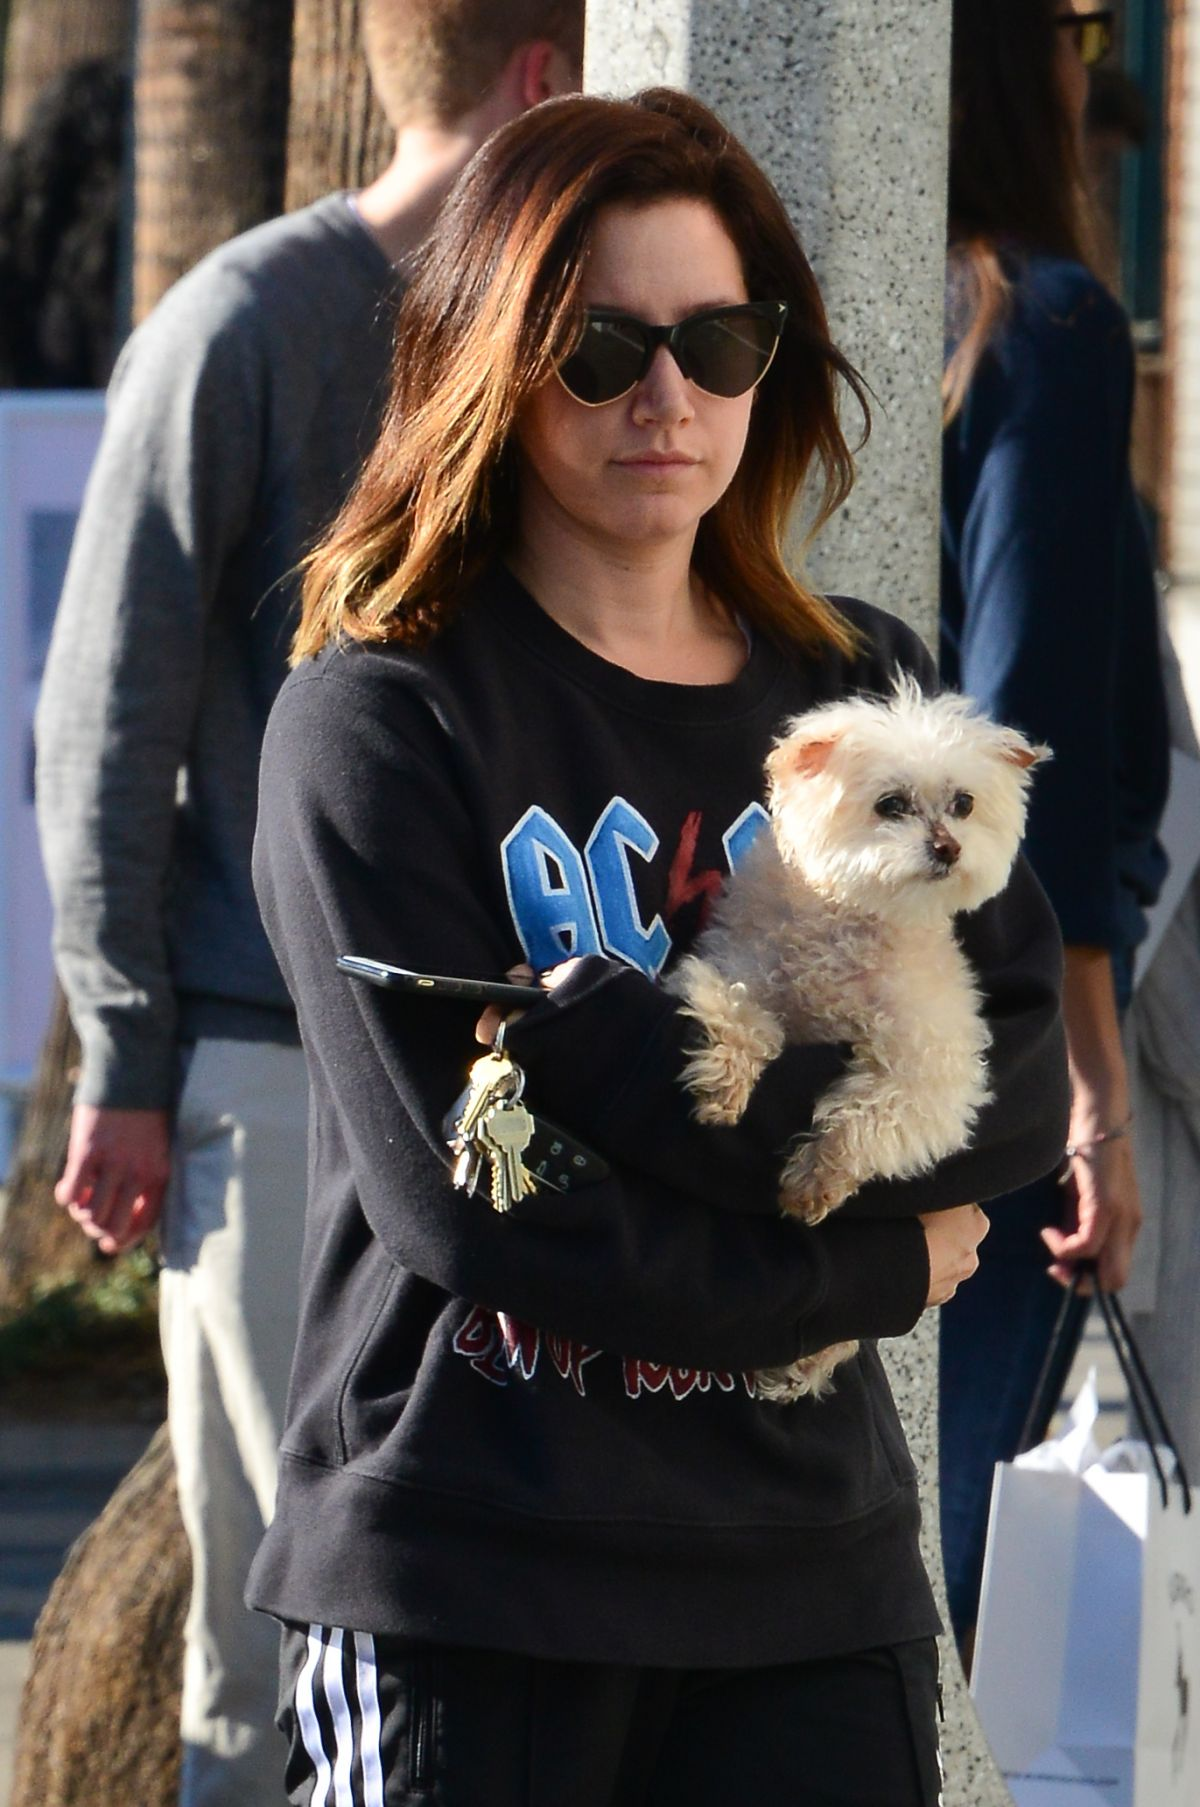 Ashley Tisdale Out With Her Dog In Venice Beach 12192017 Hawtcelebs